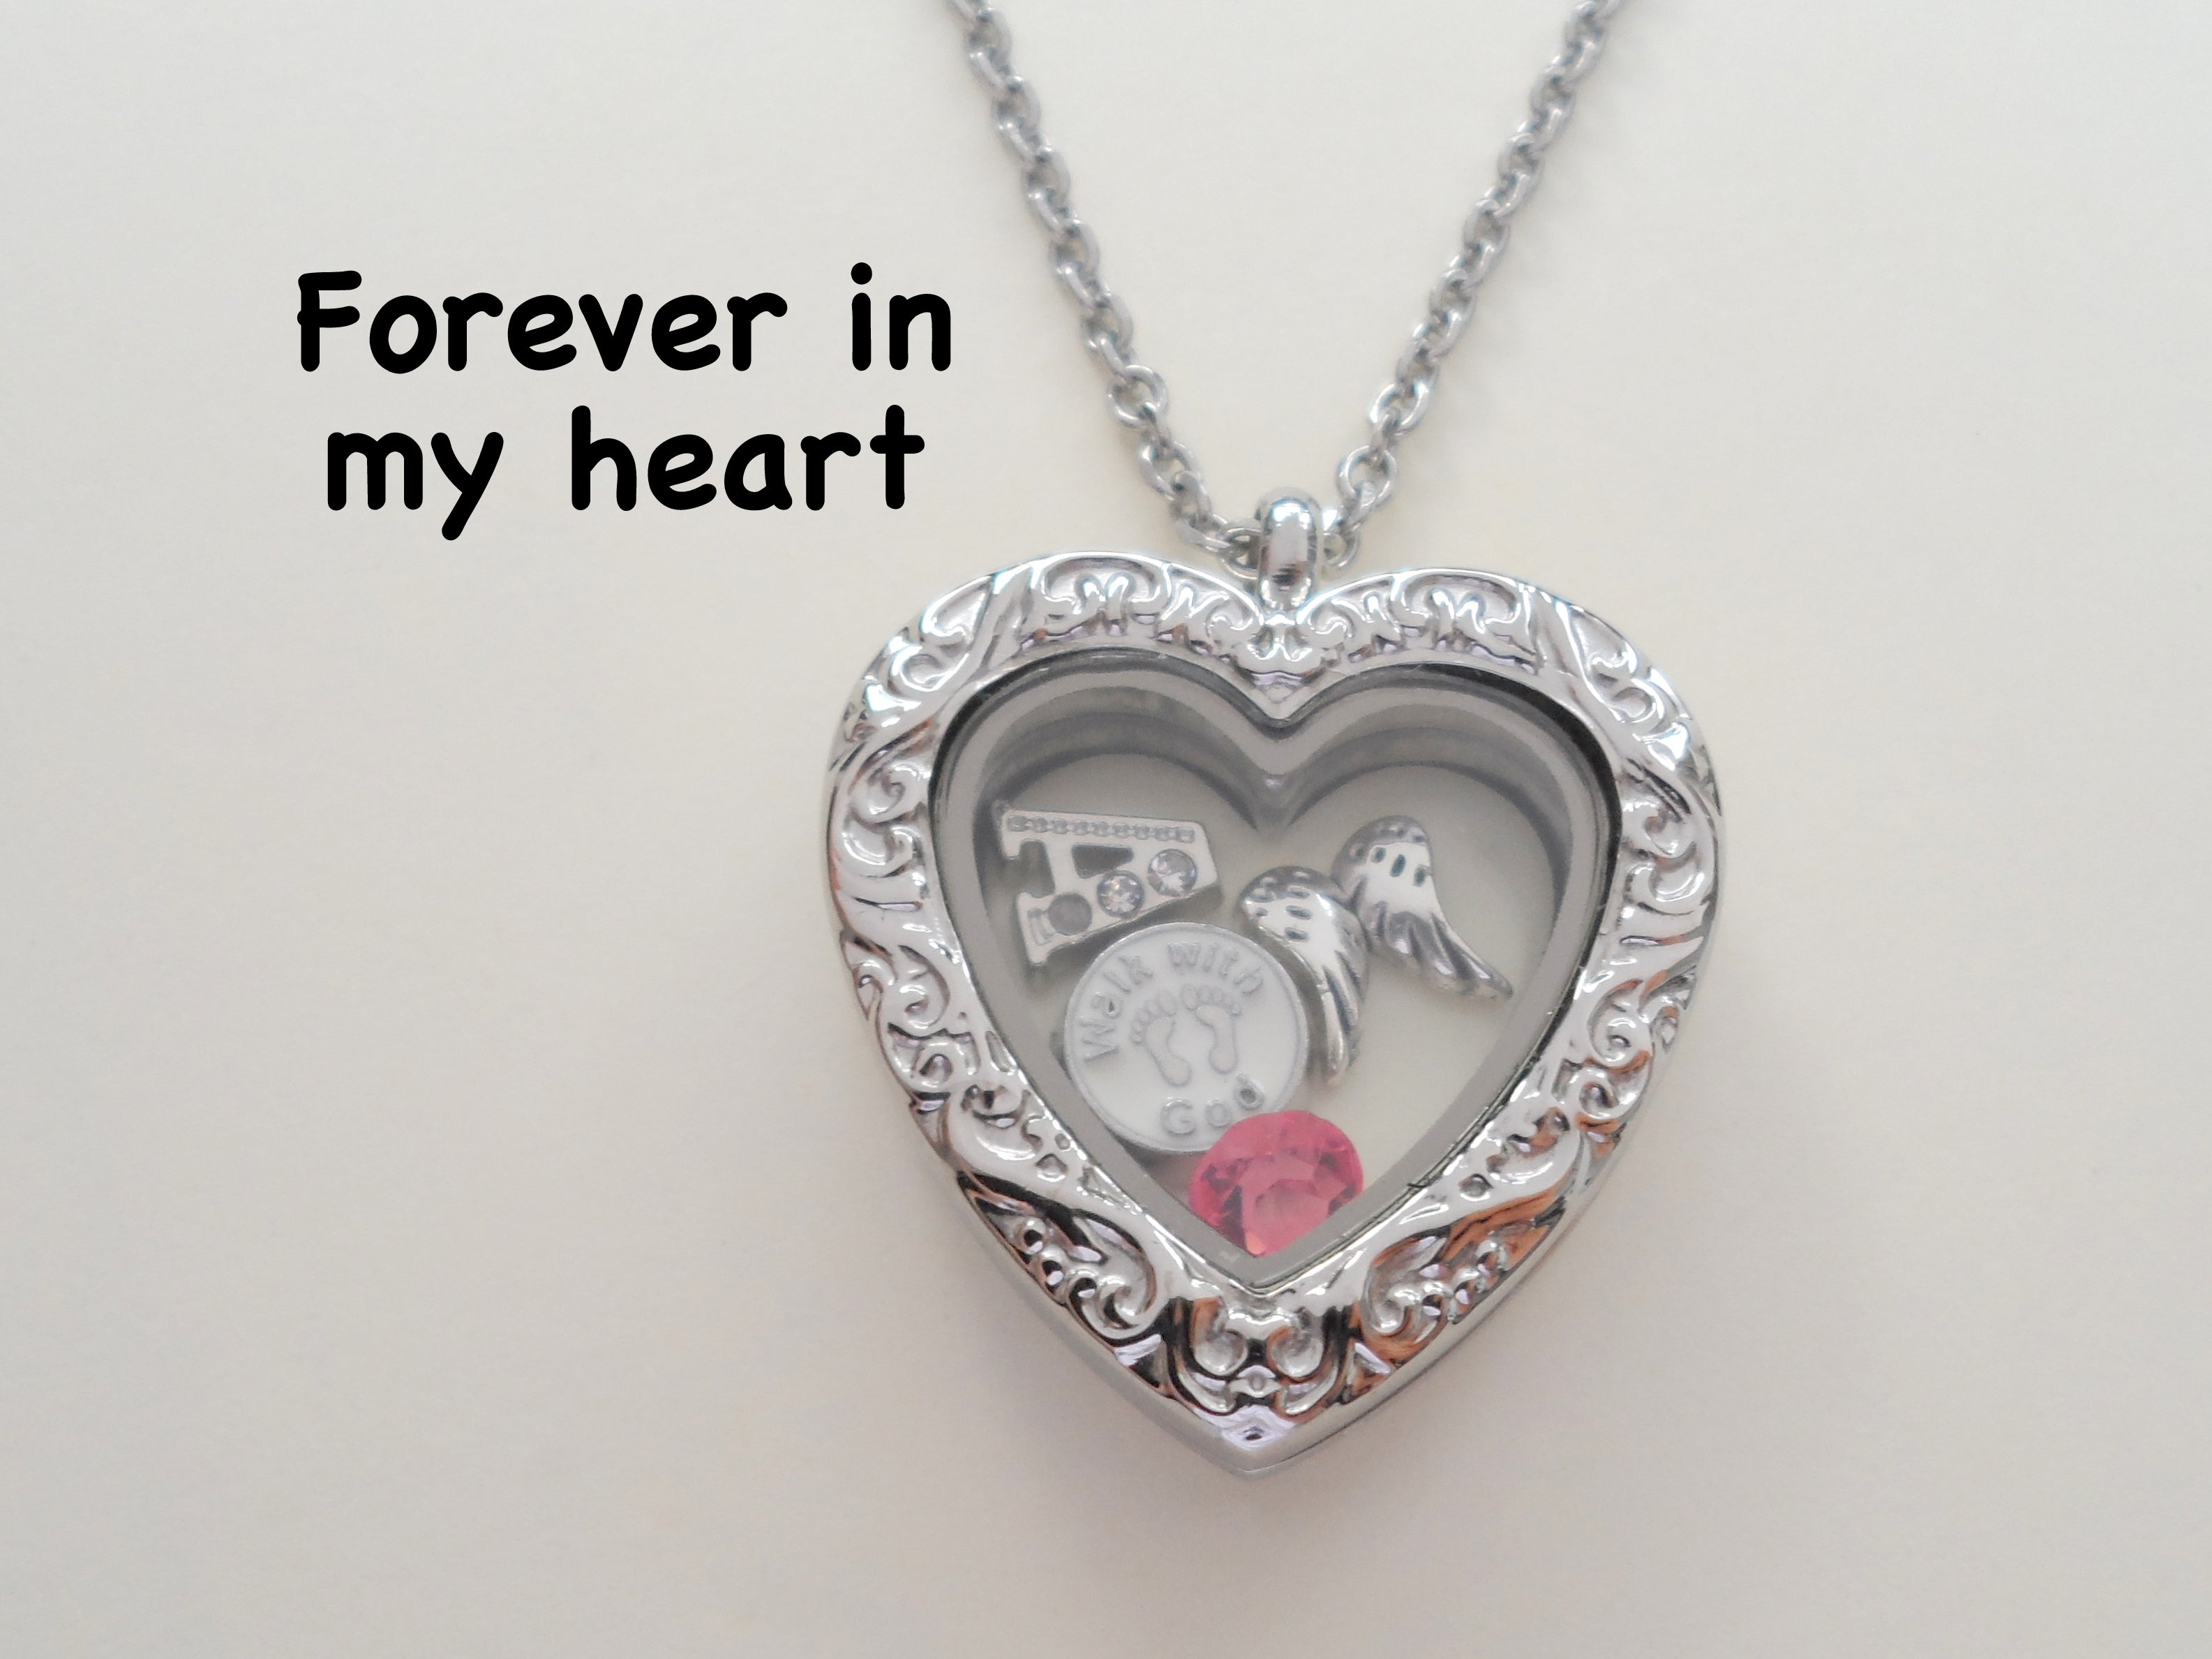 sterling any heart product silver charm with text engraved bracelet memorial necklace